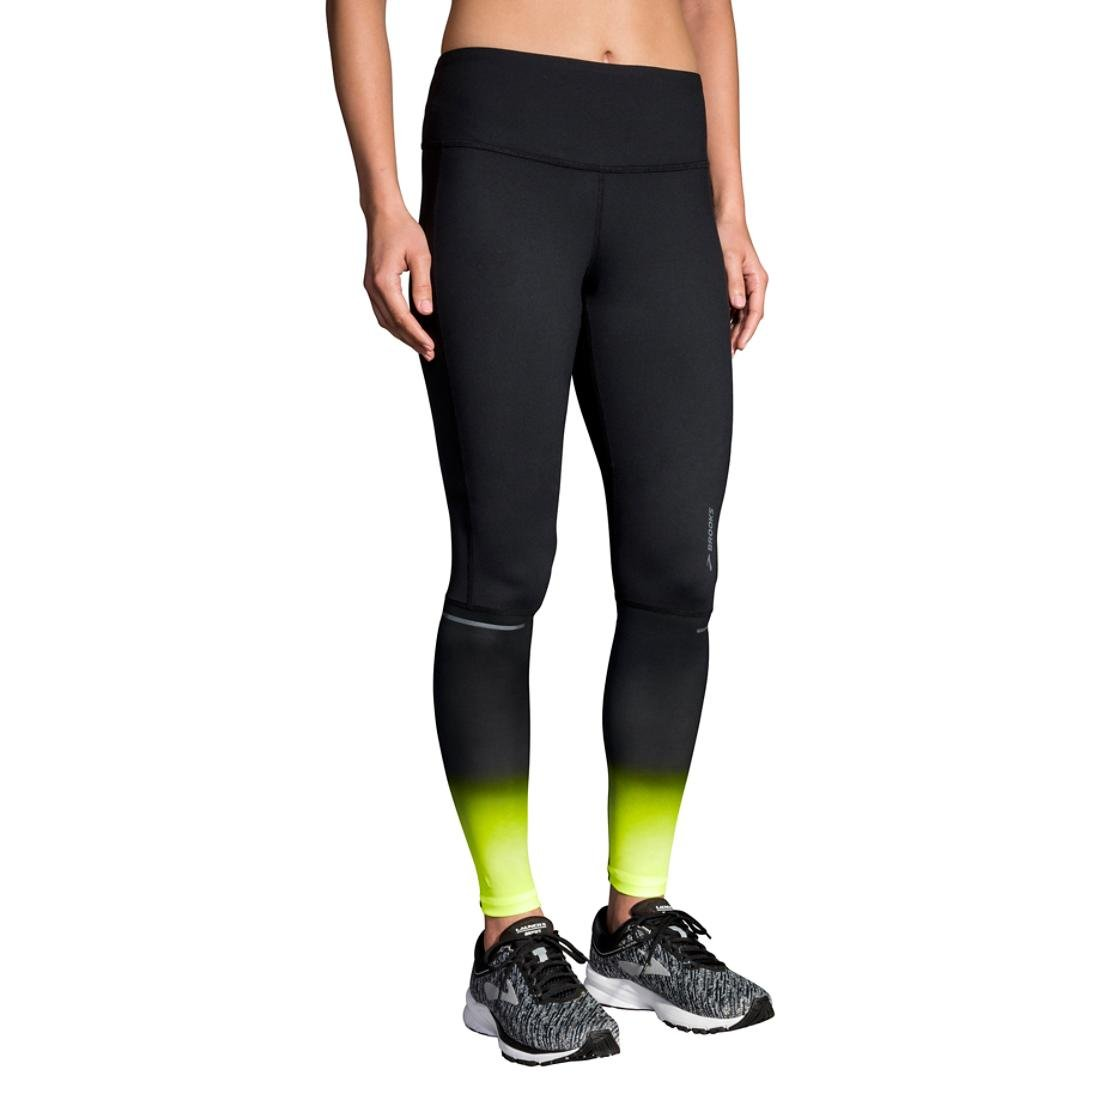 f0133899f5187 Amazon.com: Brooks Womens Nightlife Greenlight Tights: Clothing